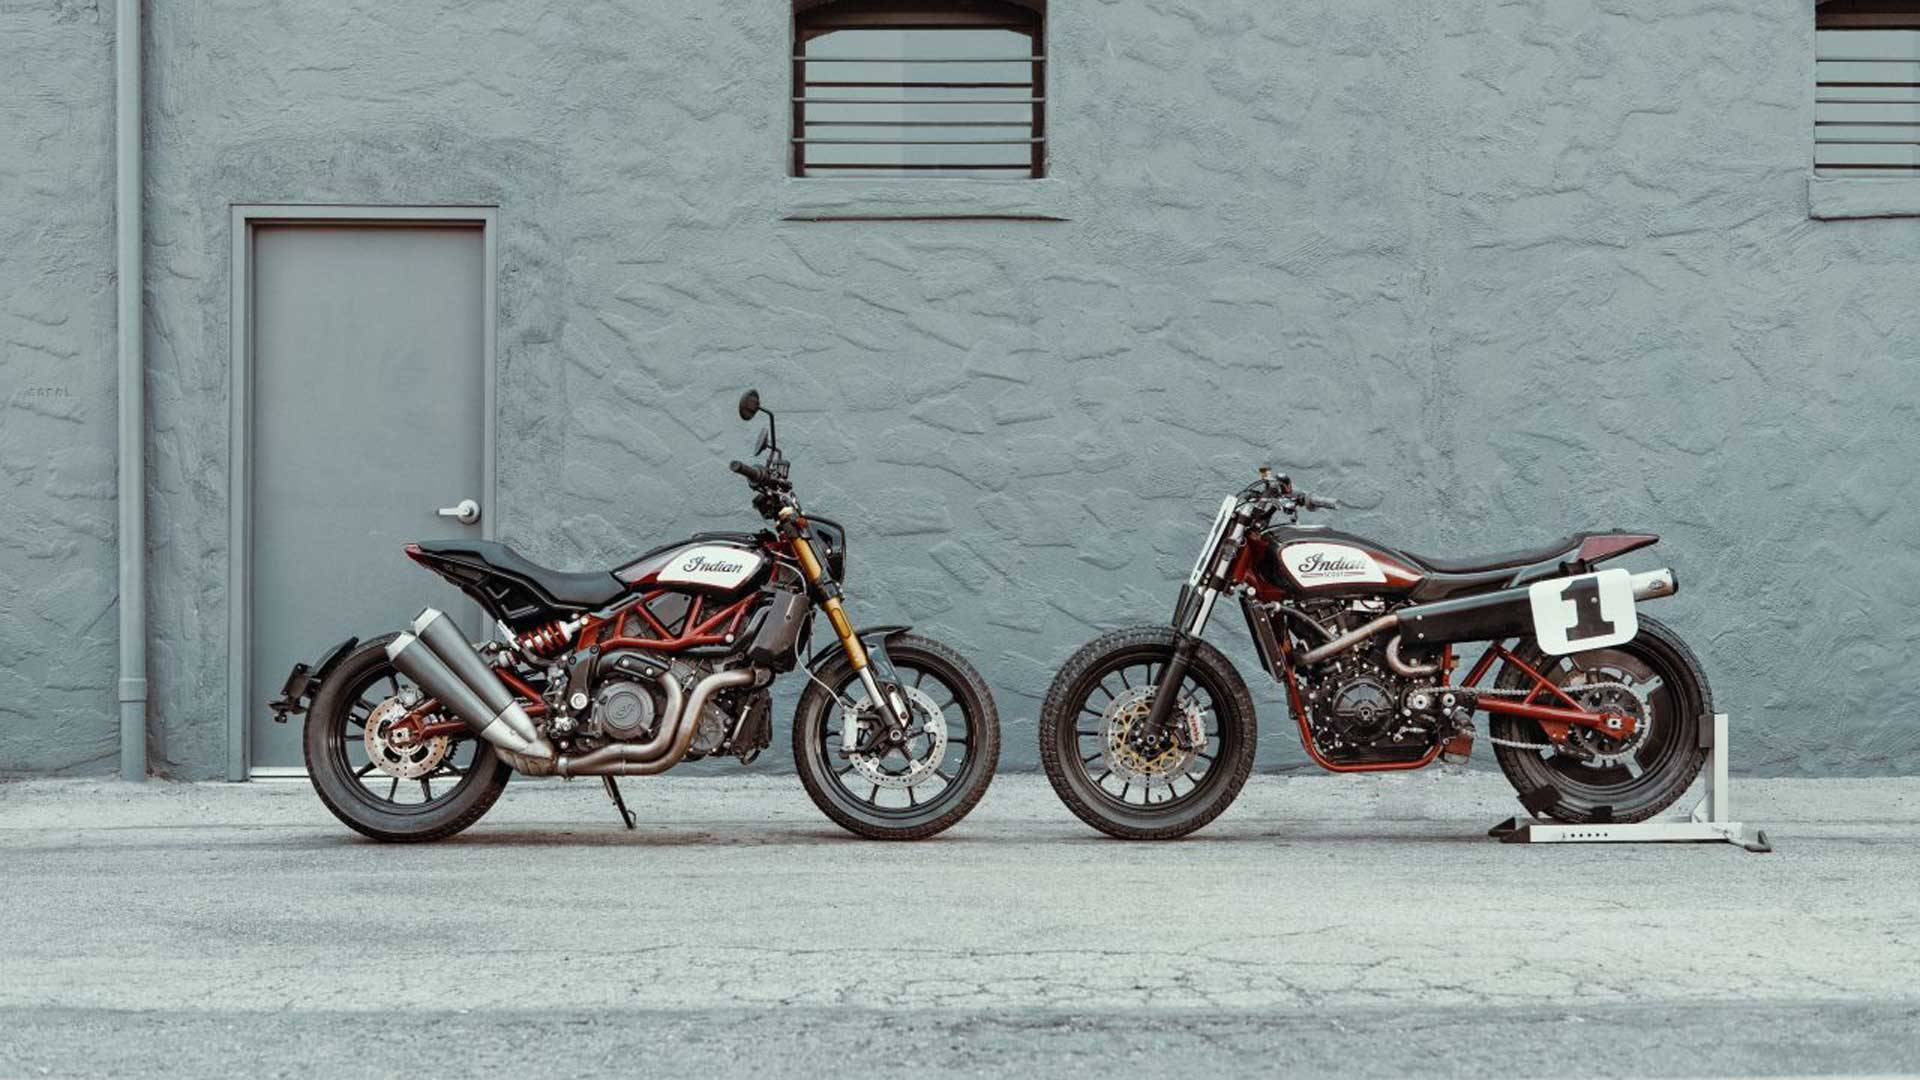 Indian Motorcycle Reveals Perfection: The 2019 FTR 1200 Is Here